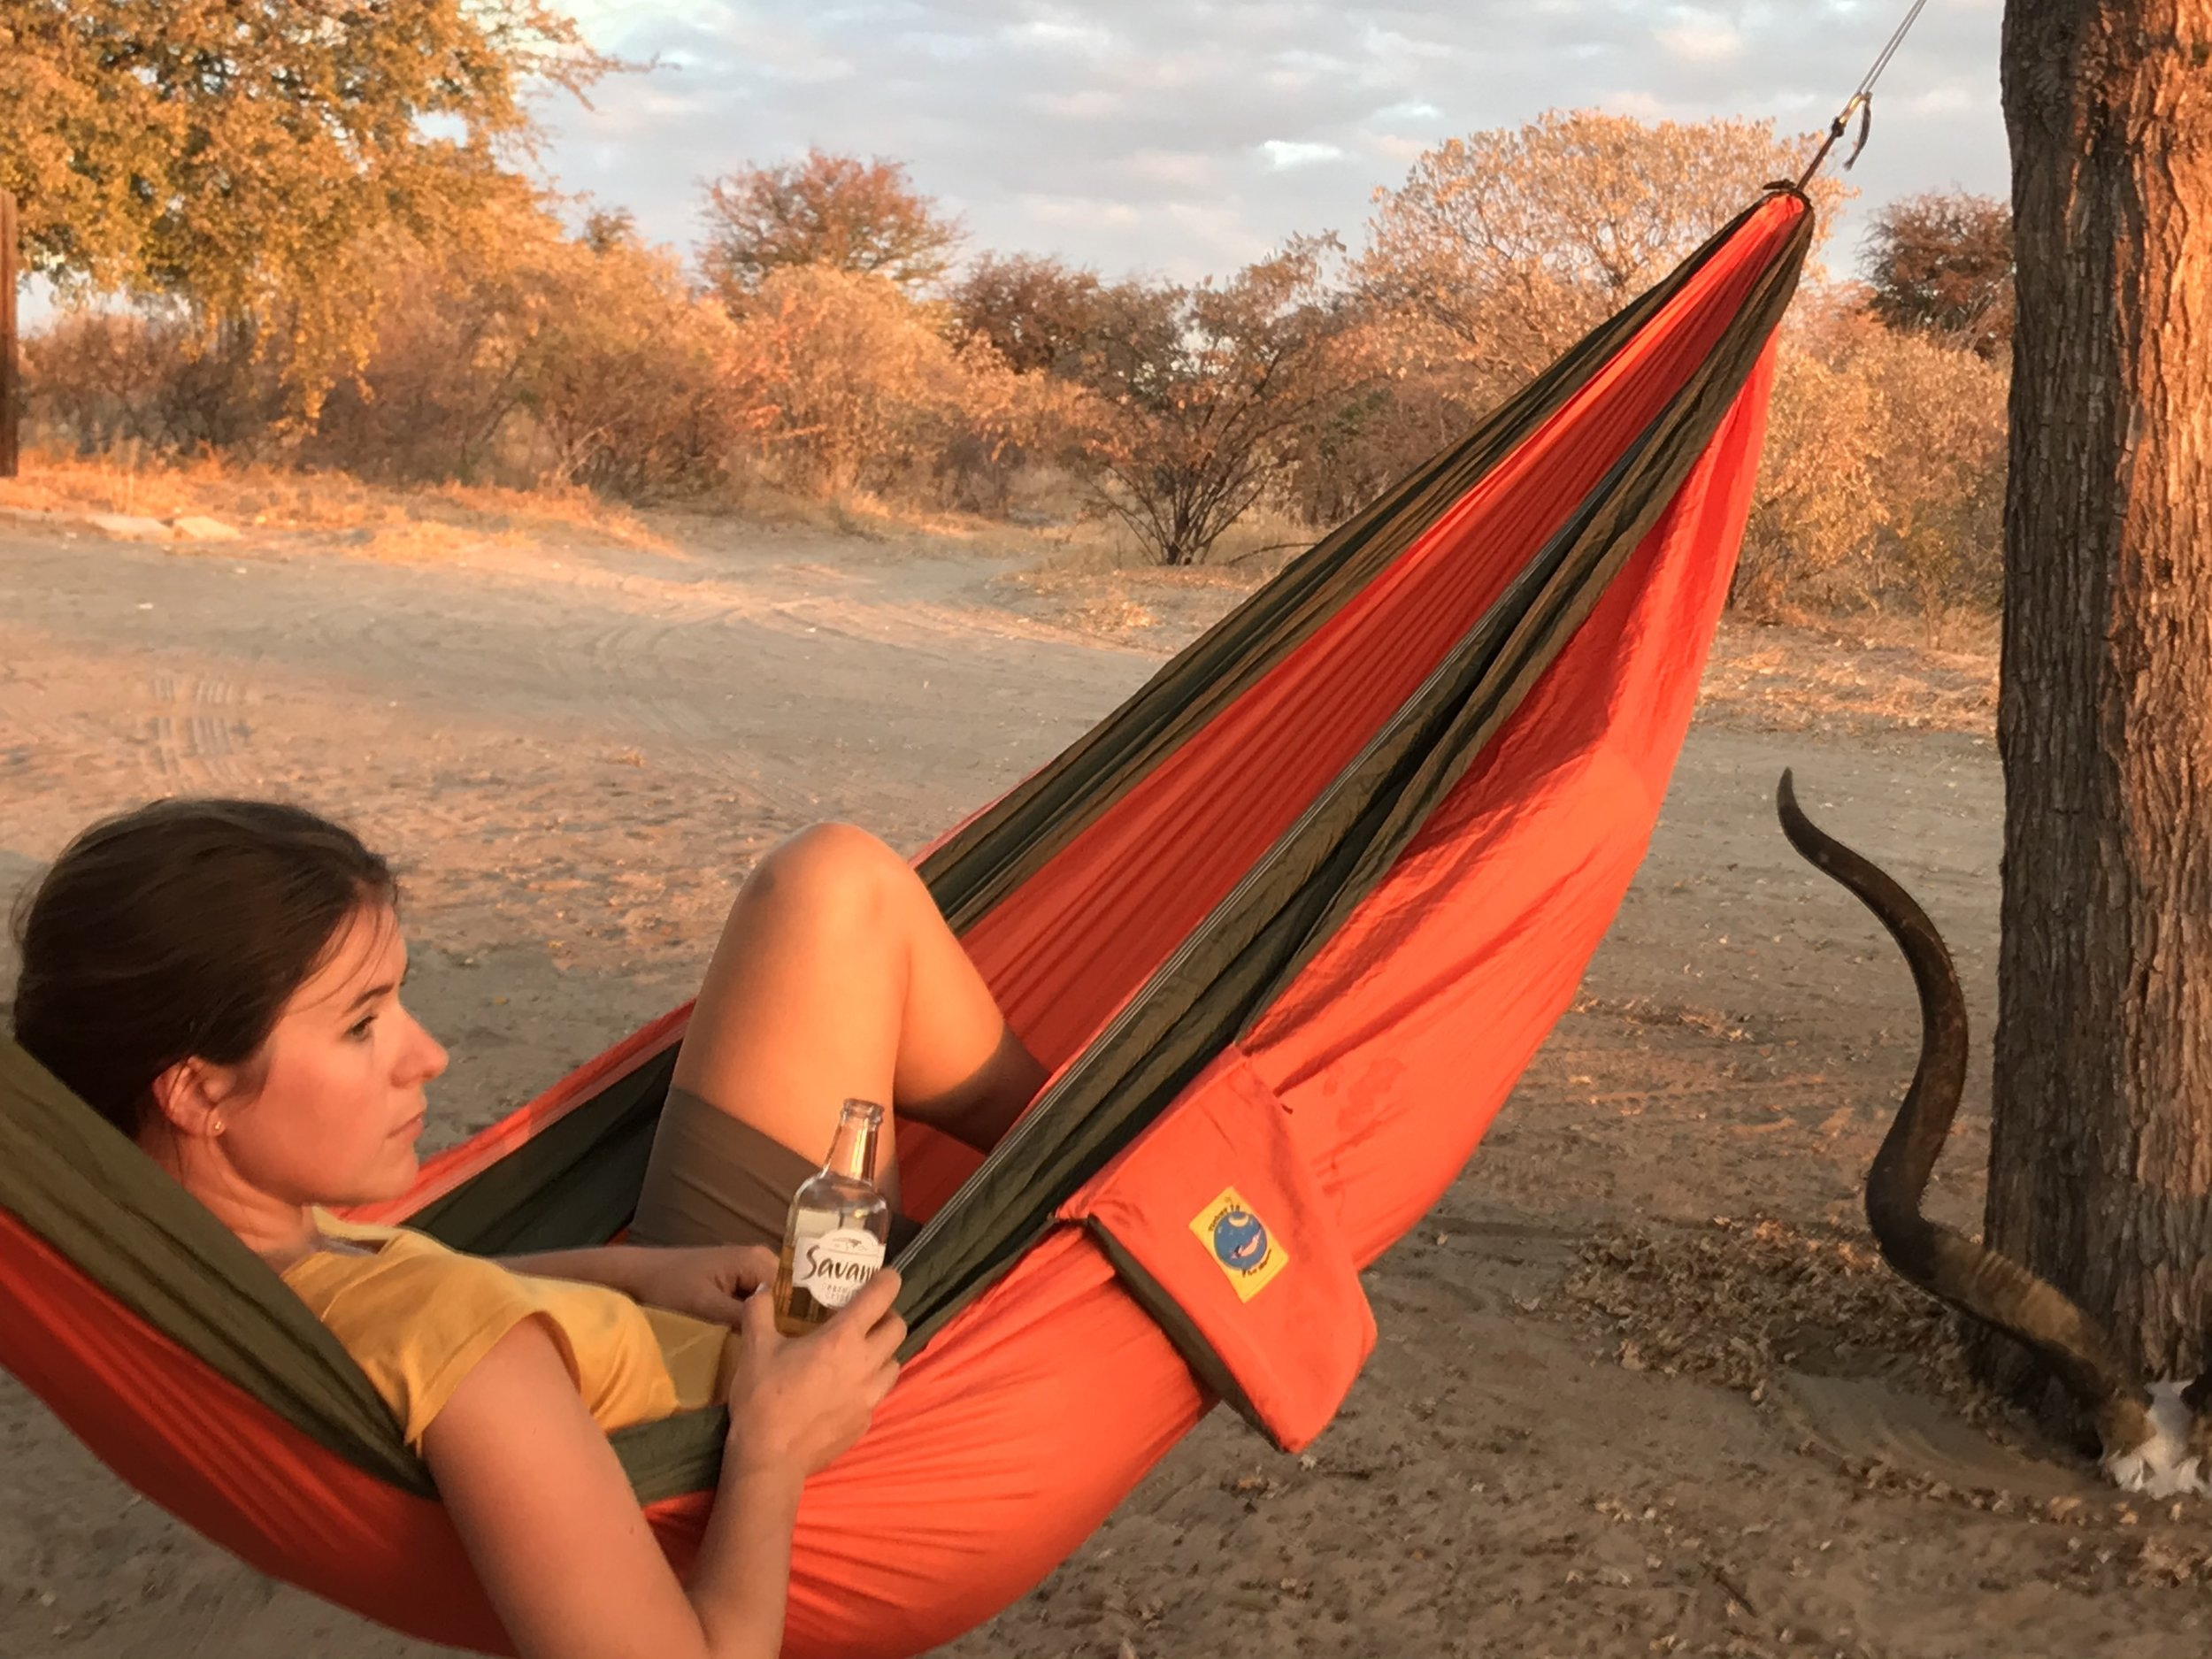 Relaxing in the Kalahari